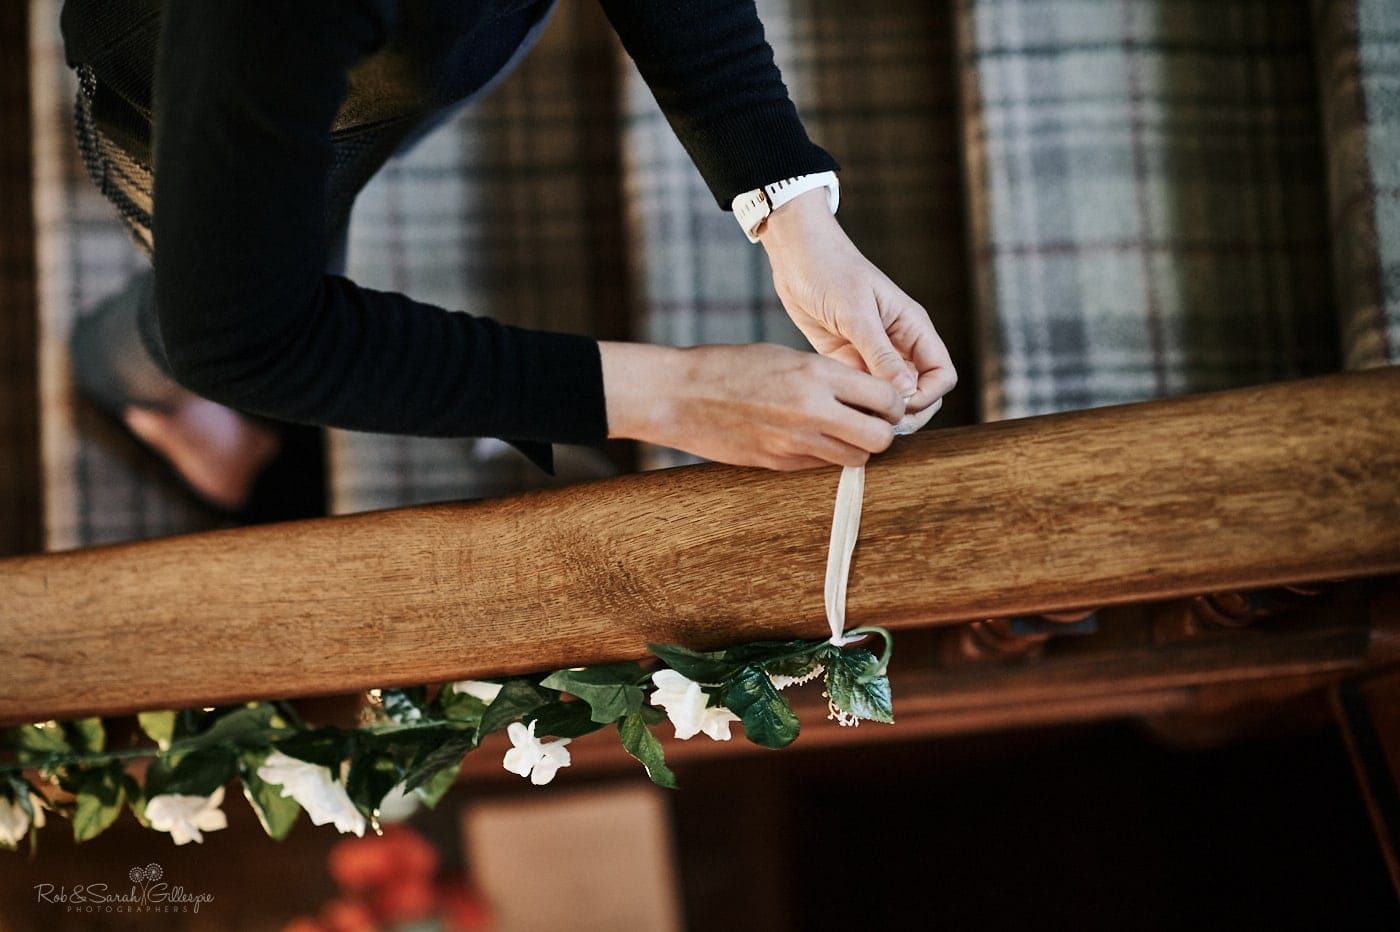 Pendrell Hall staff tie flowers to bannister rail